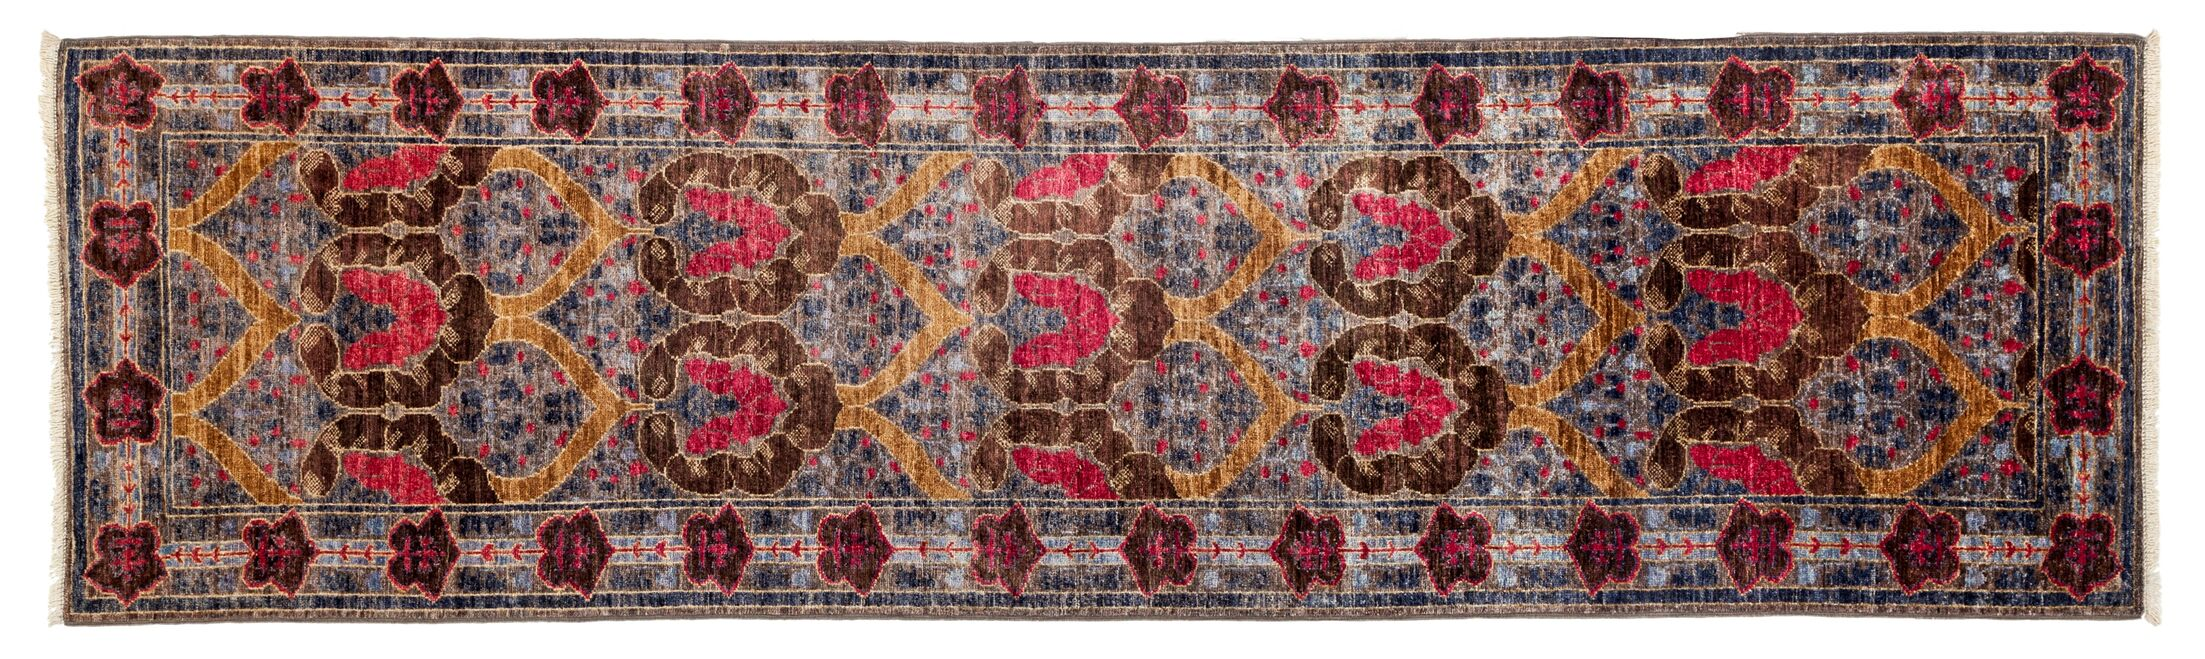 One-of-a-Kind Arts and Crafts Hand-Knotted Pink/Brown Area Rug